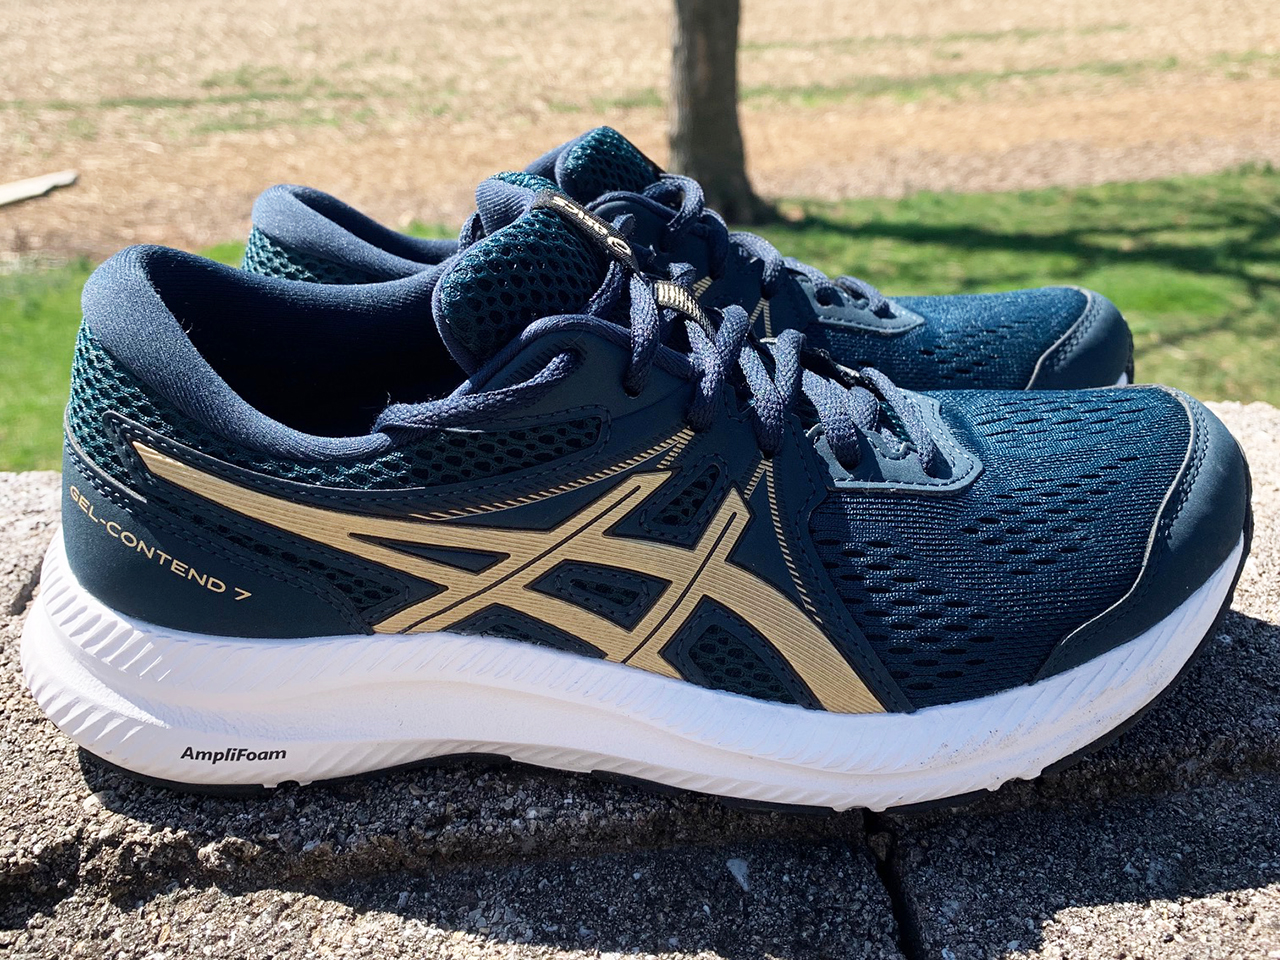 Asics Gel Contend 7 Review